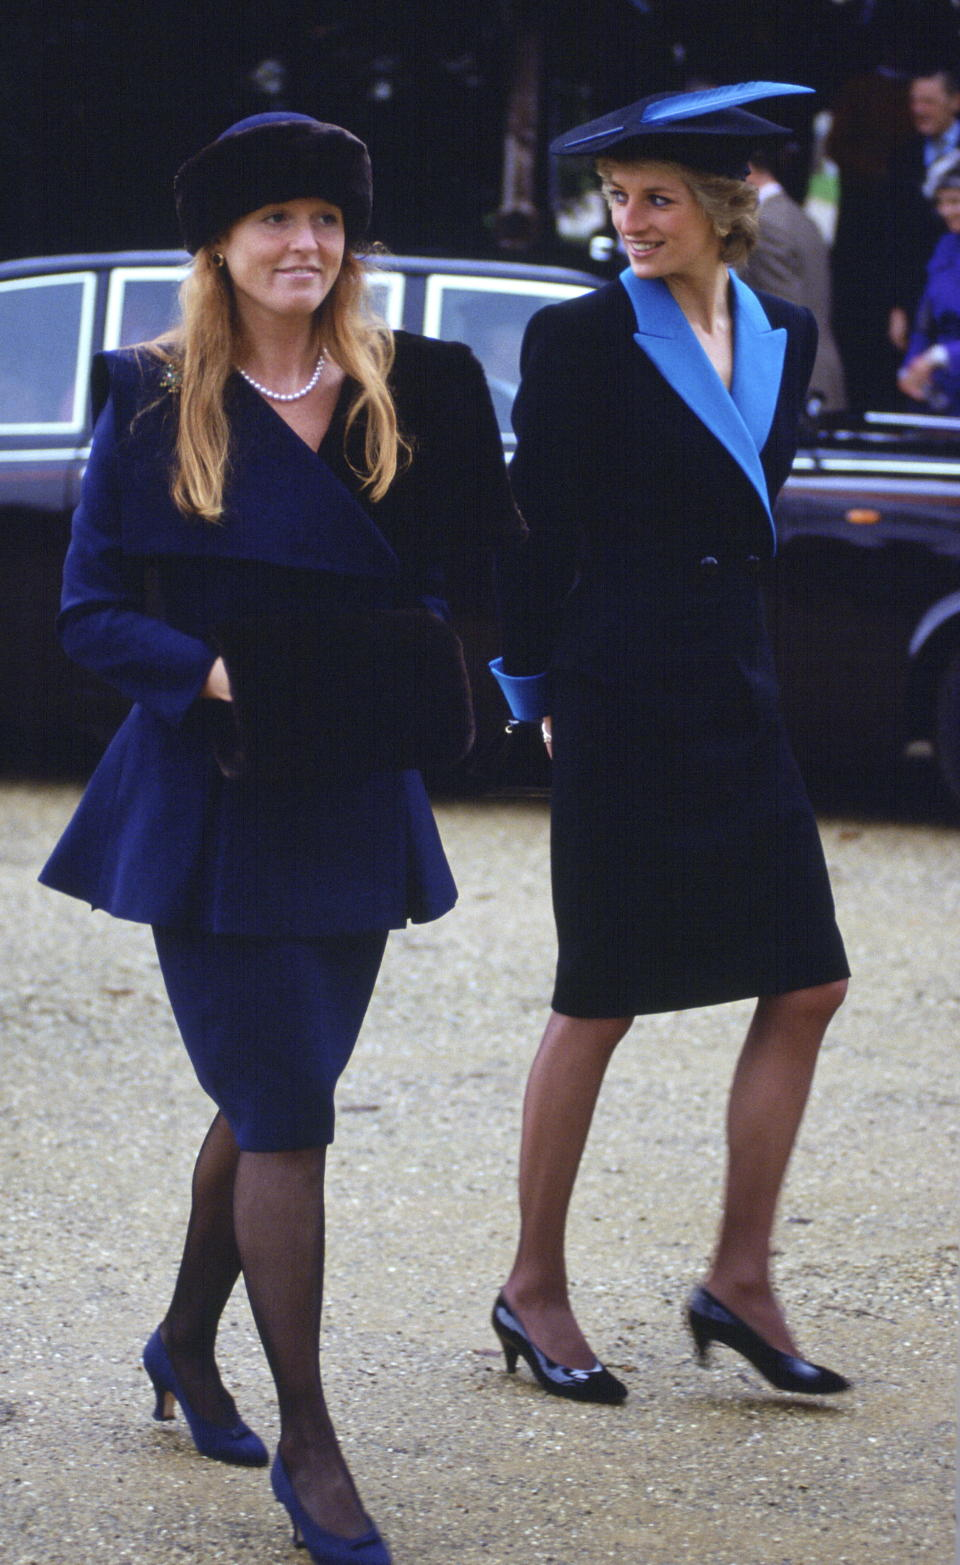 Diana and Sarah Ferguson looked like two peas in a pod when they arrived in matching outfits for Christmas Day at Sandringham in 1988. Photo: Getty Images